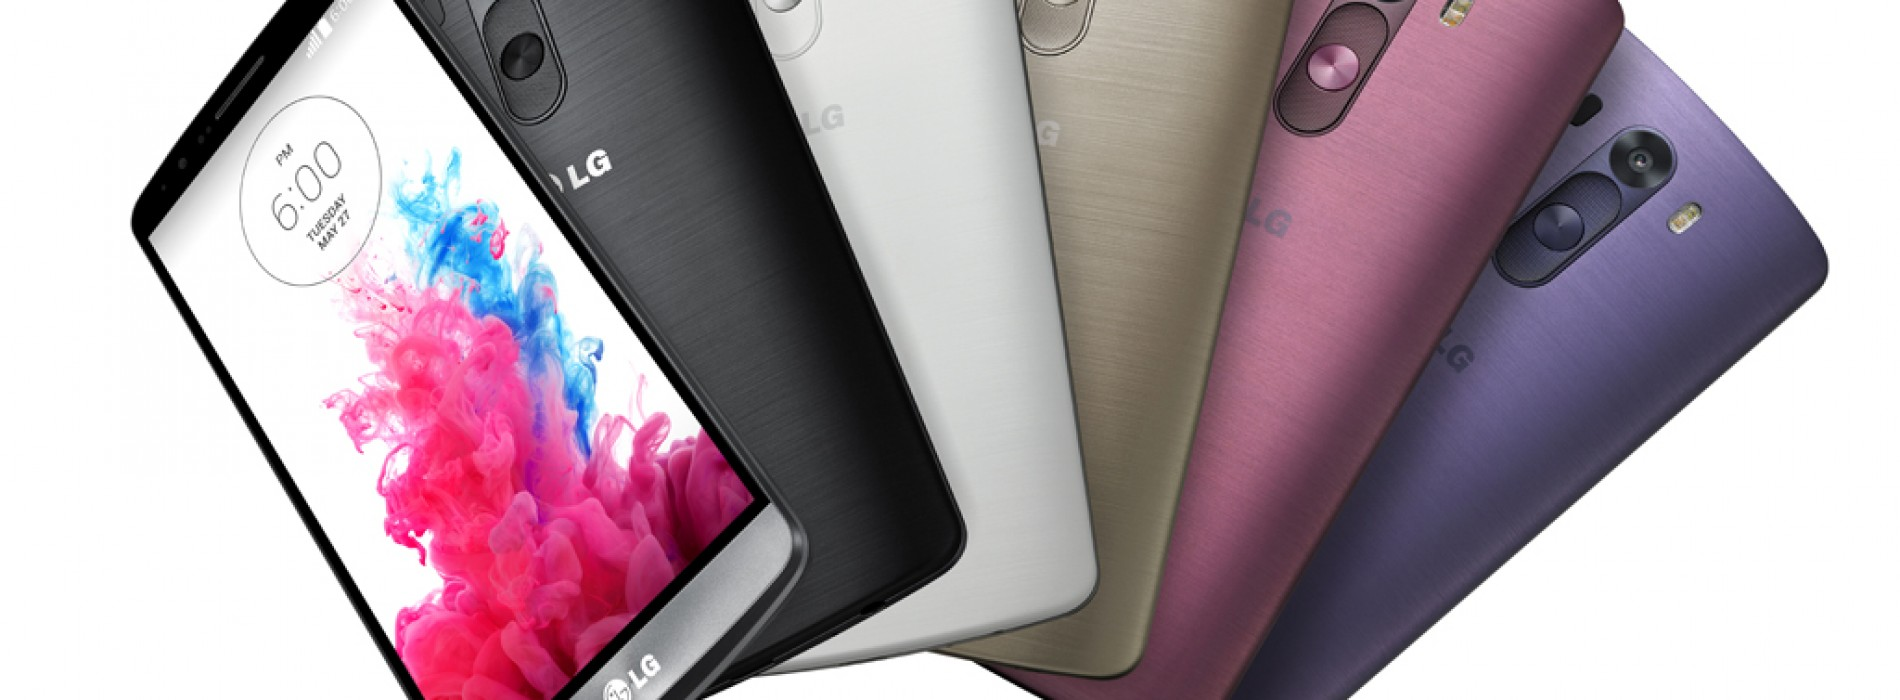 LG G3 global rollout starting June 27